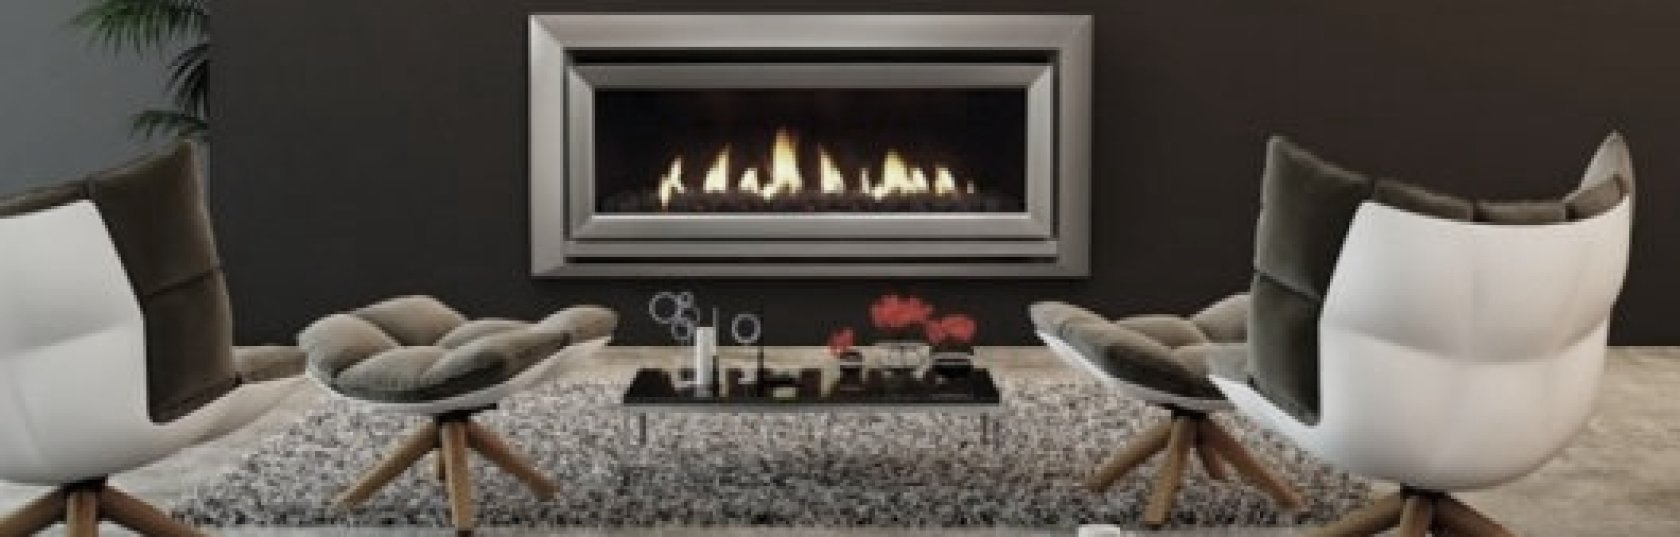 Getting fired up: Richard Miller shares why glass front fireplaces are in vogue